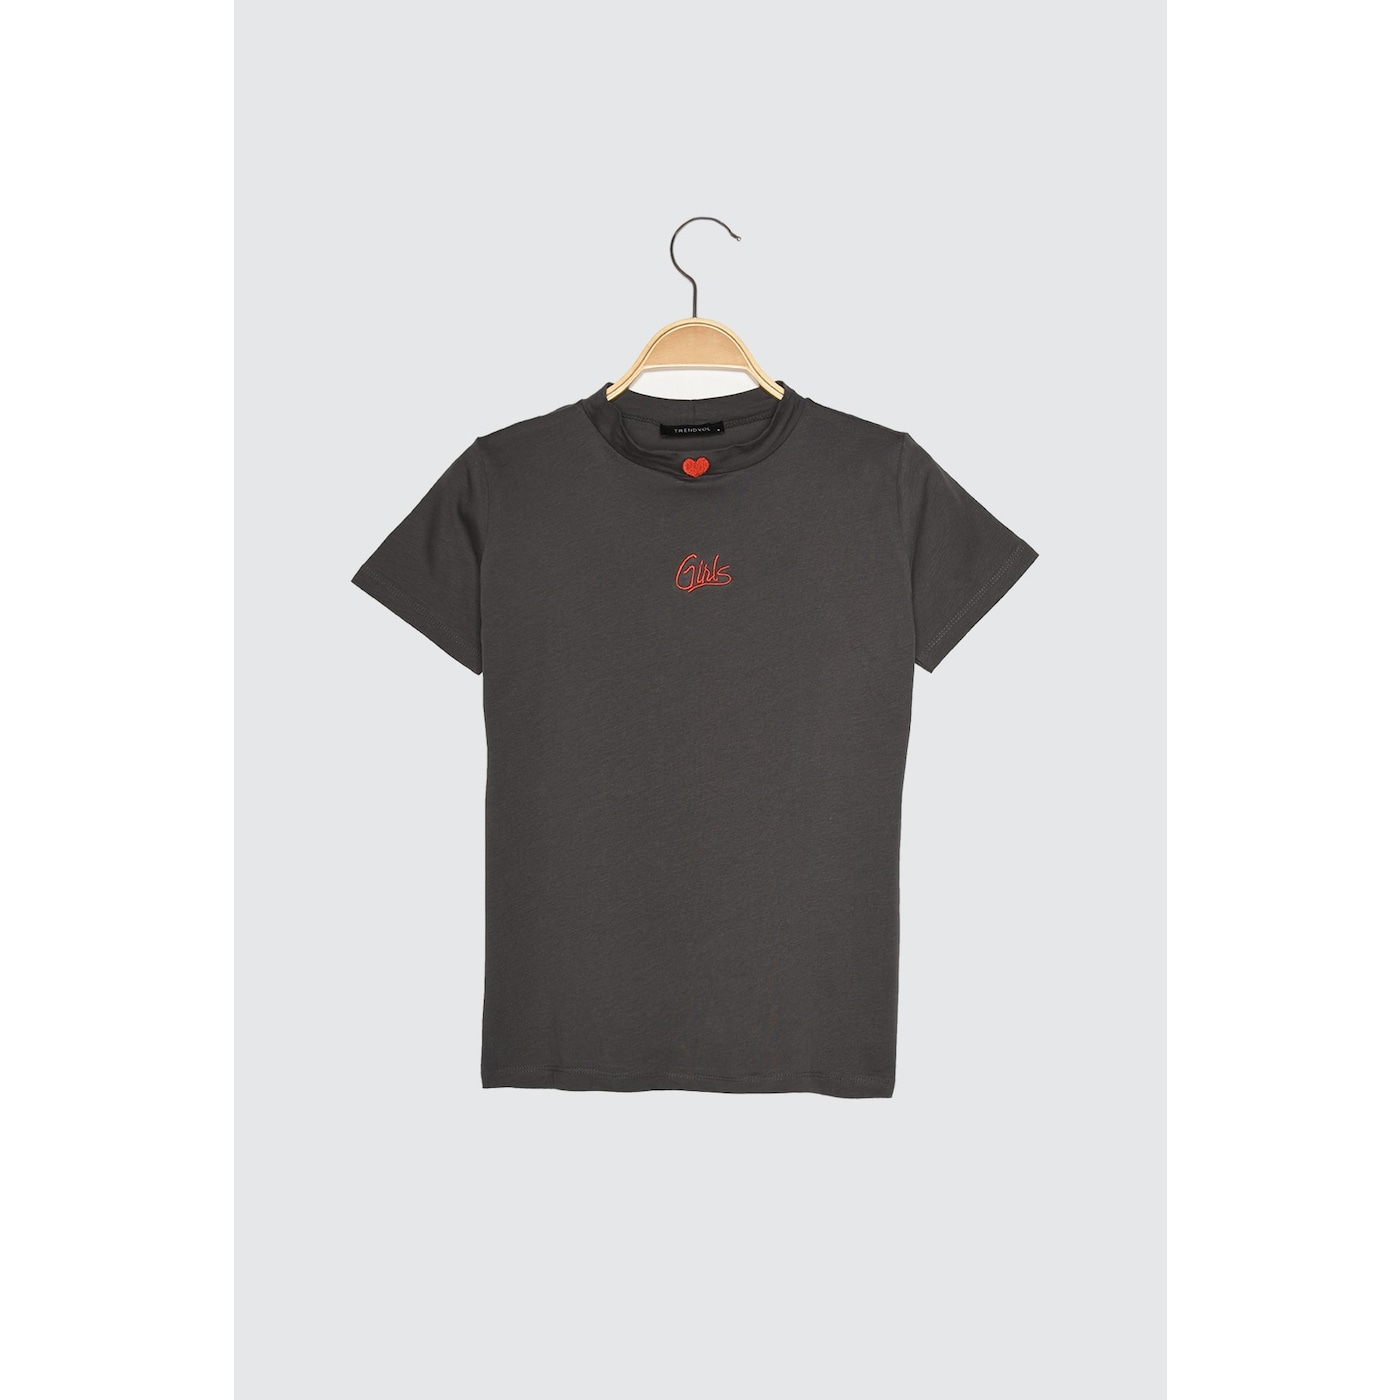 Trendyol Anthracite Embroidered Upright Collar Basic Knitted T-Shirt dámské L